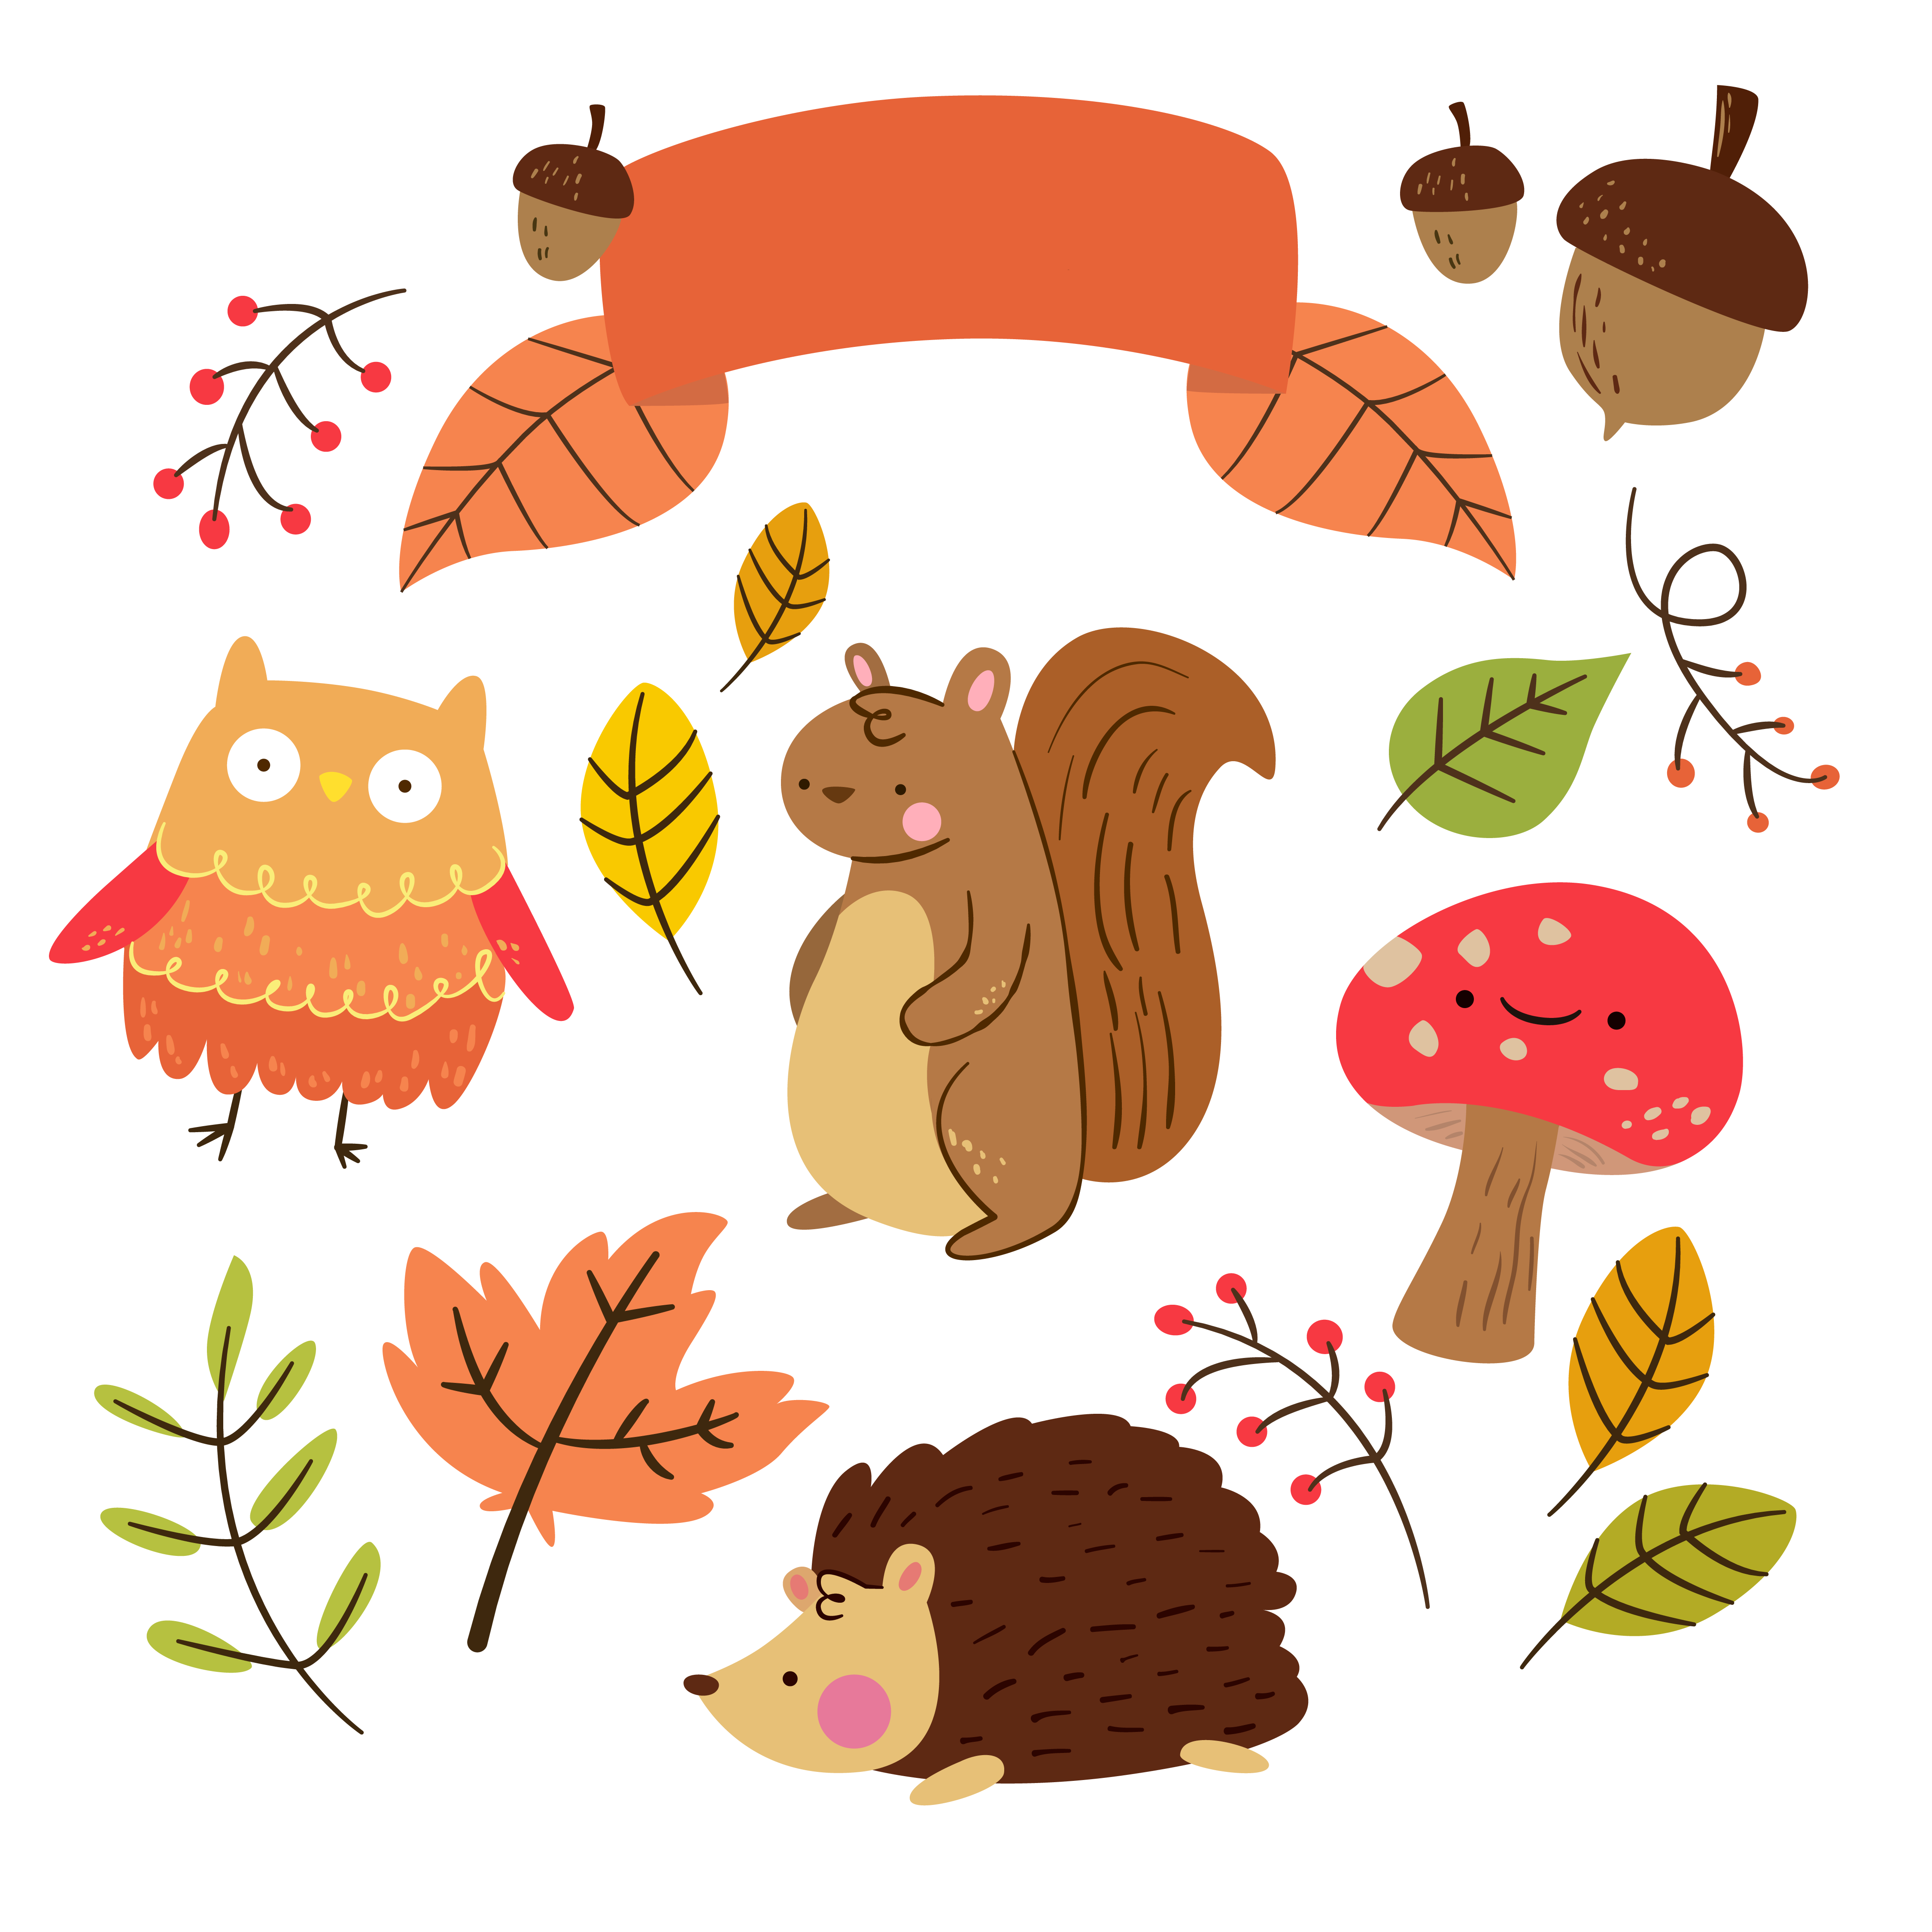 Free Critter Autumn Planner Stickers And-Free Critter Autumn Planner Stickers and Clip Art!-12